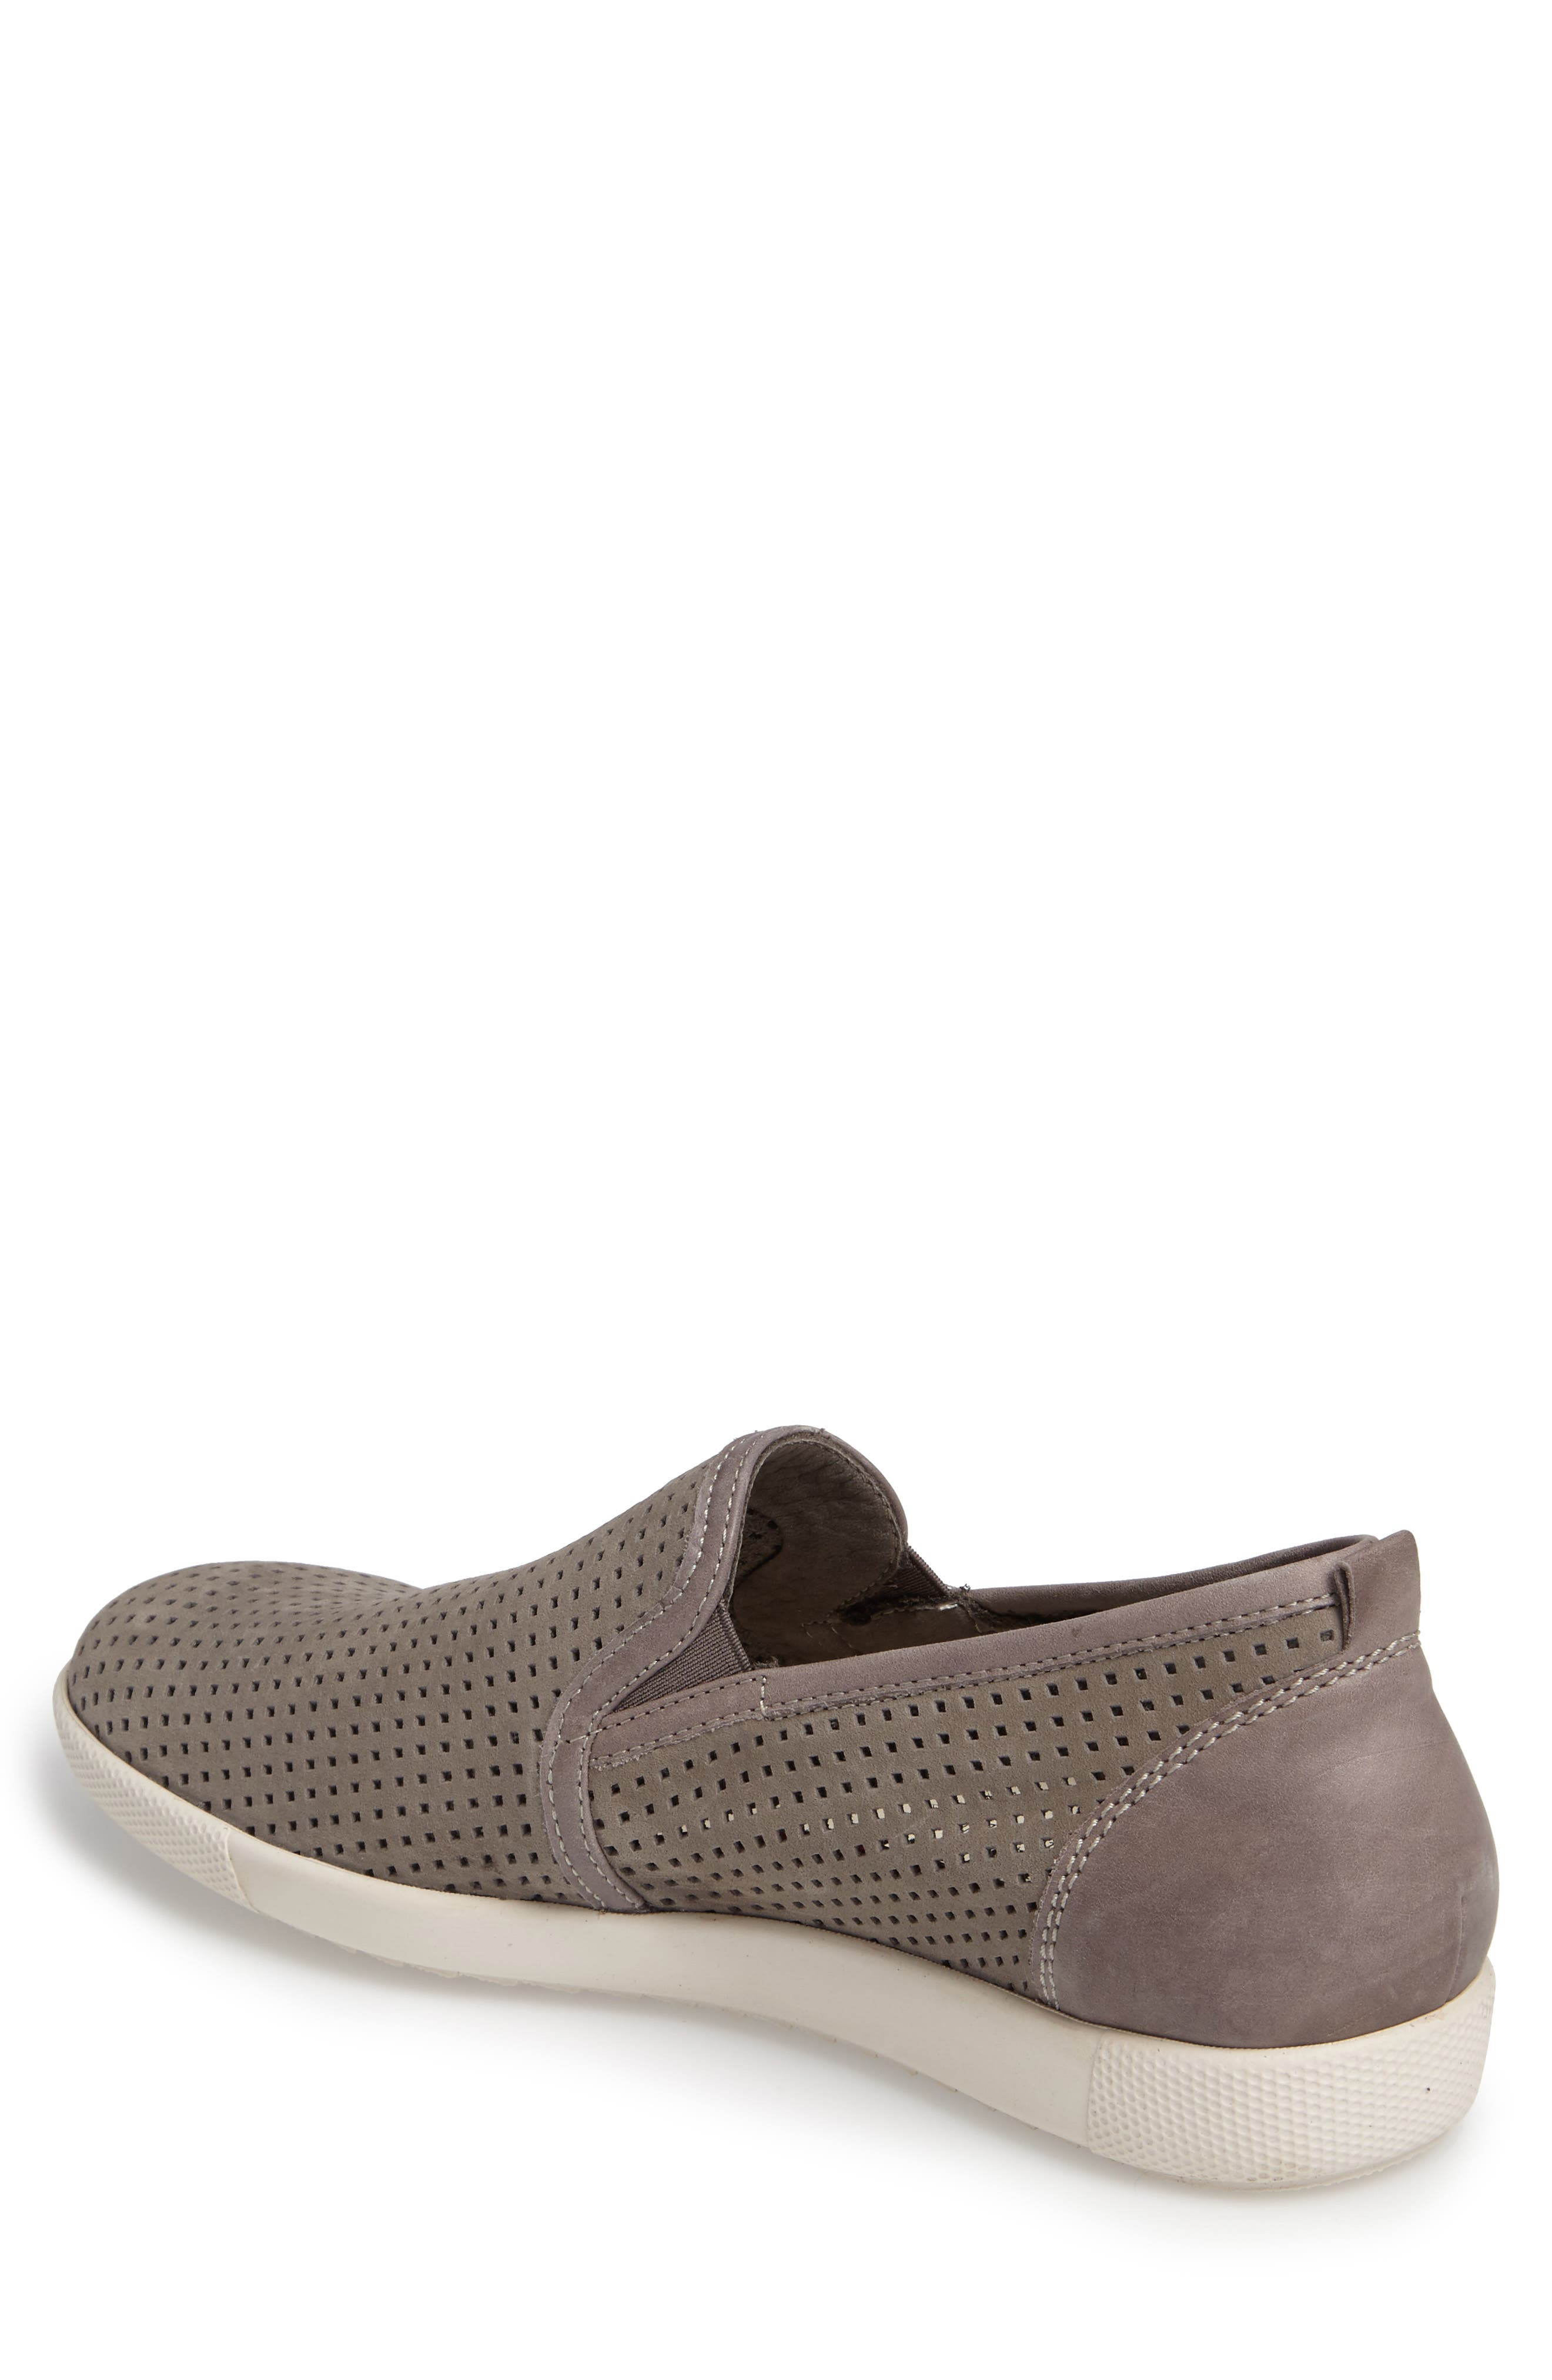 'Ulrich' Perforated Leather Slip-On,                             Alternate thumbnail 2, color,                             LIGHT GREY SPORTBUCK